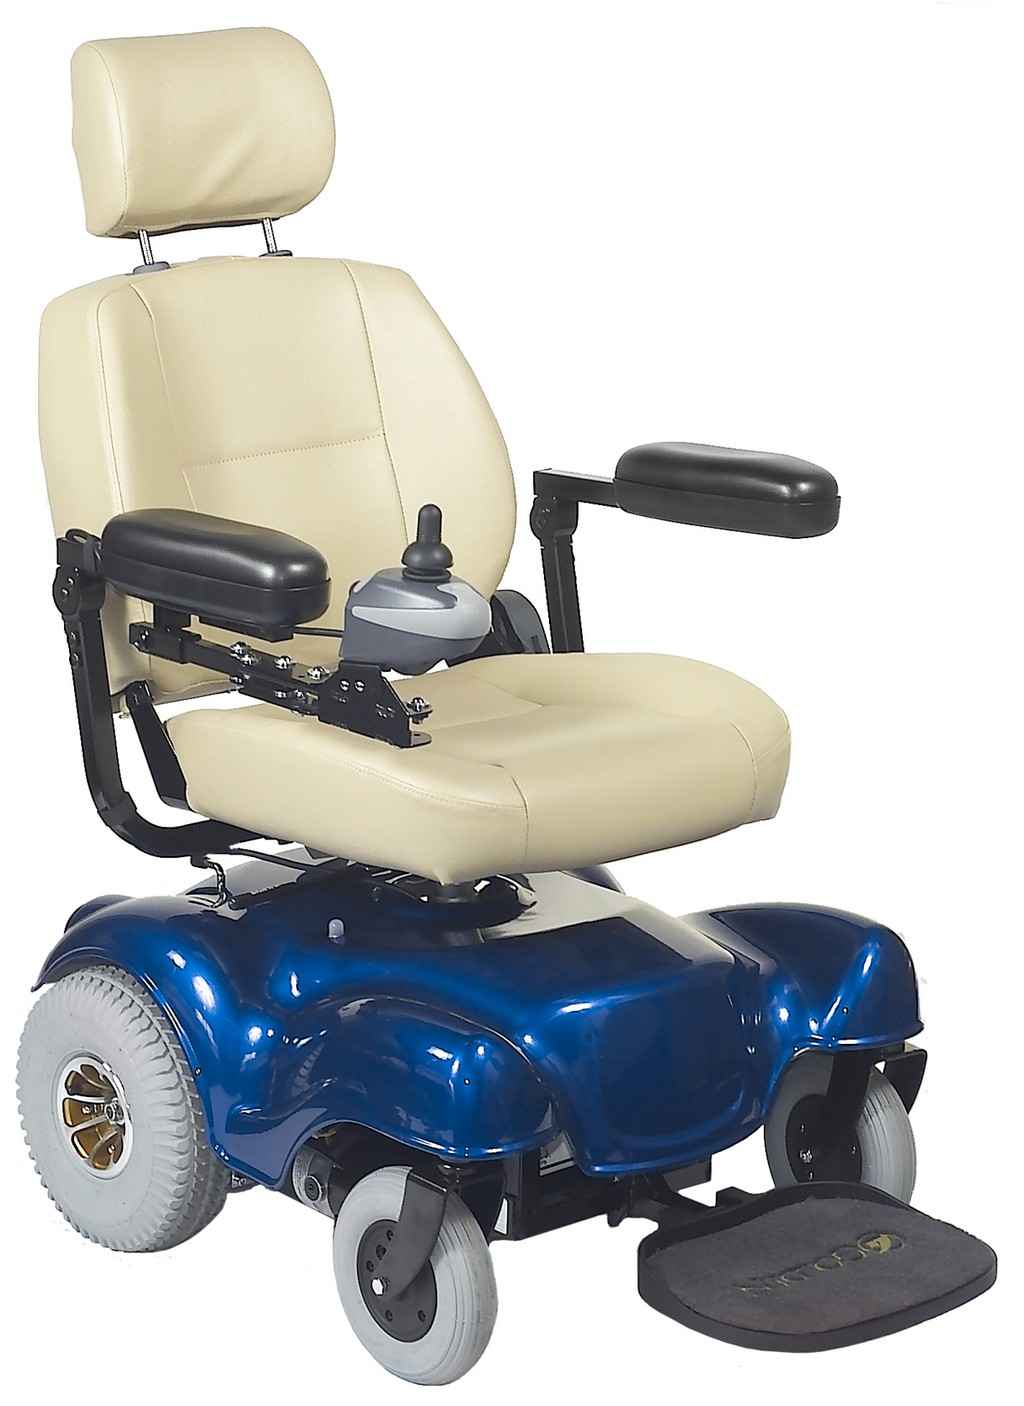 power wheelchair repair solutions, used power wheelchair or scooter, electric wheelchair sheet music, power wheel chairs tires